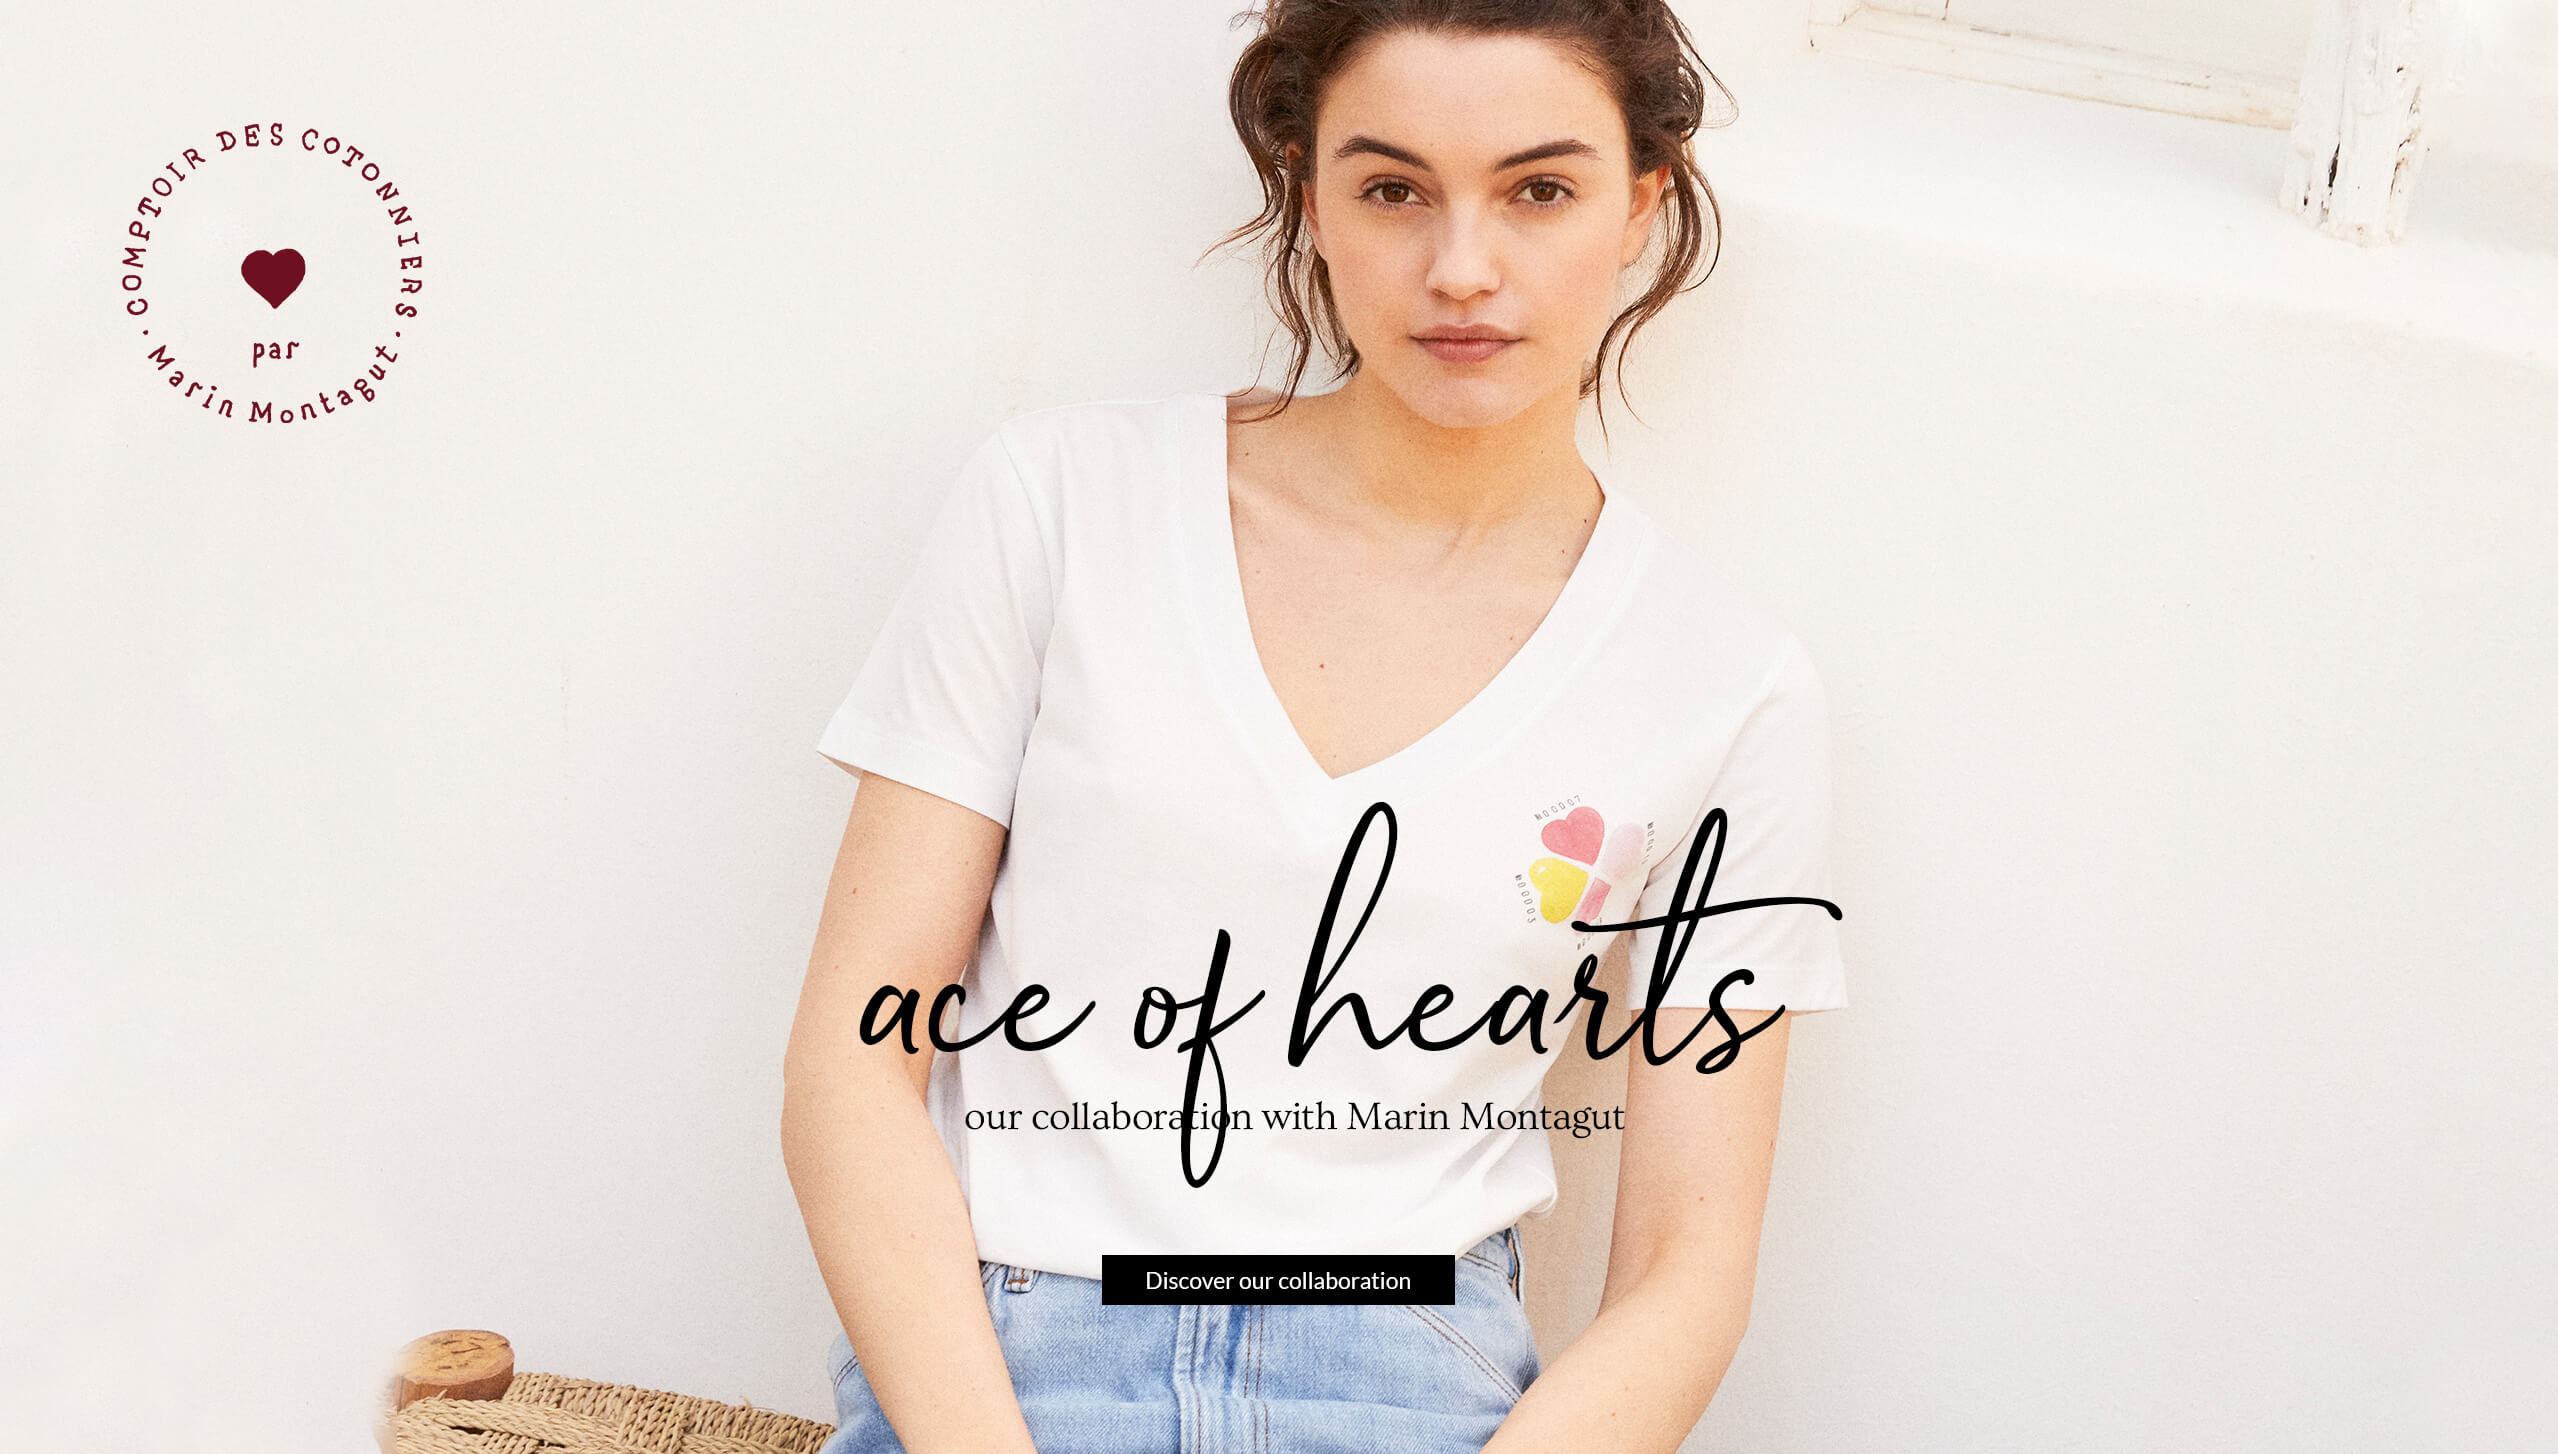 Ace of hearts - Marin Montagut collaboration